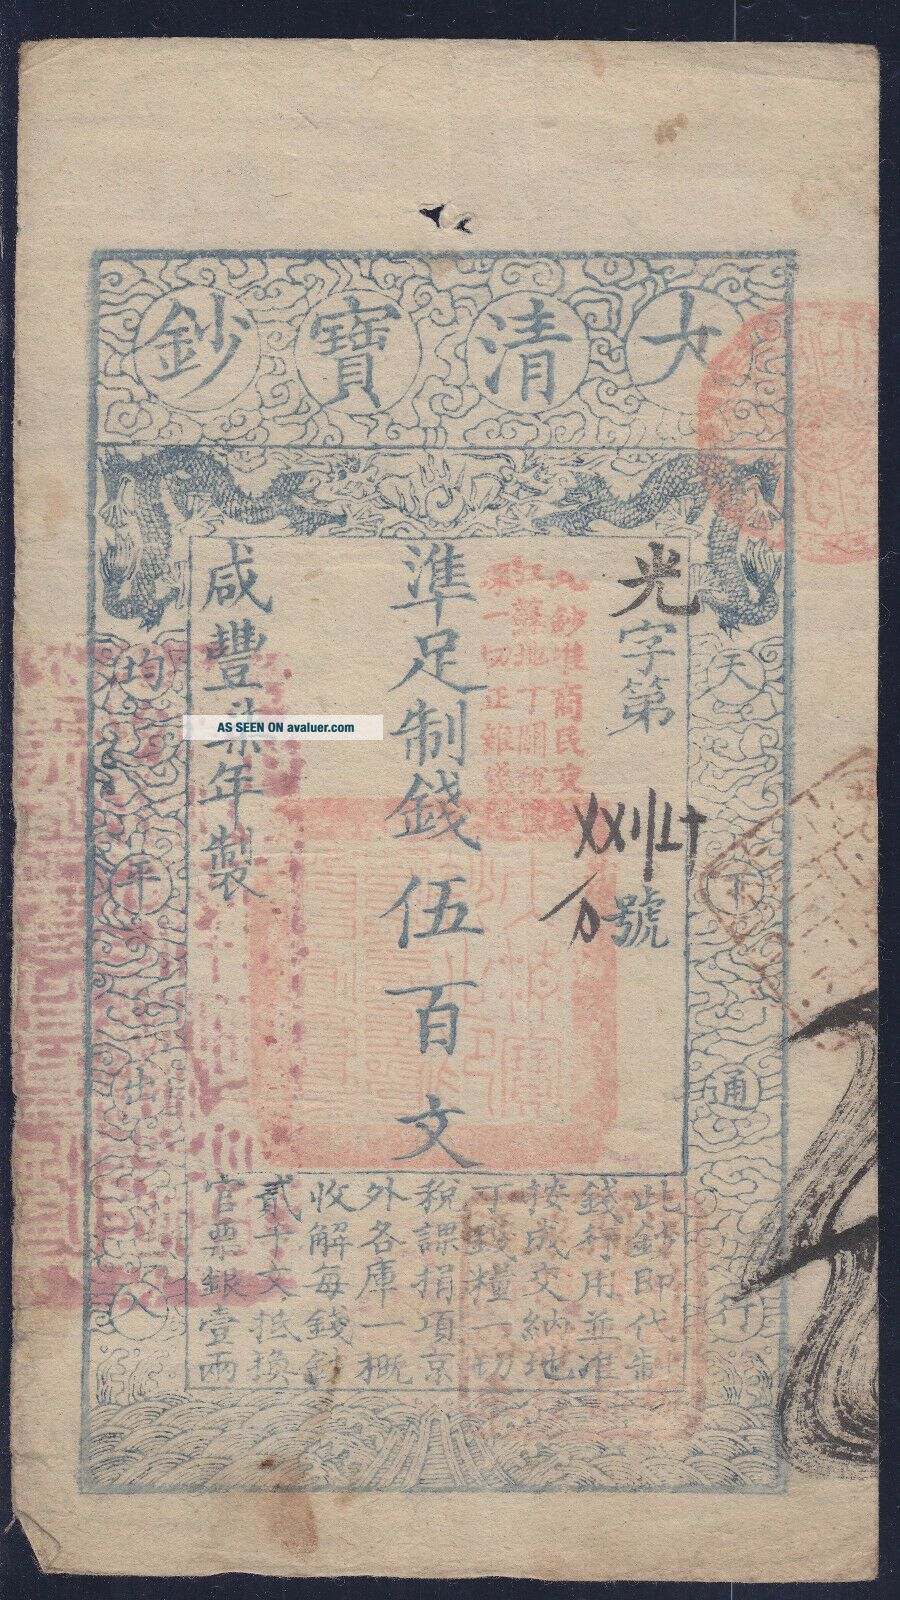 CHINA 500 CASH??? CH ' ING DYNASTY NOTE 1853?? S - M T6 - 3???